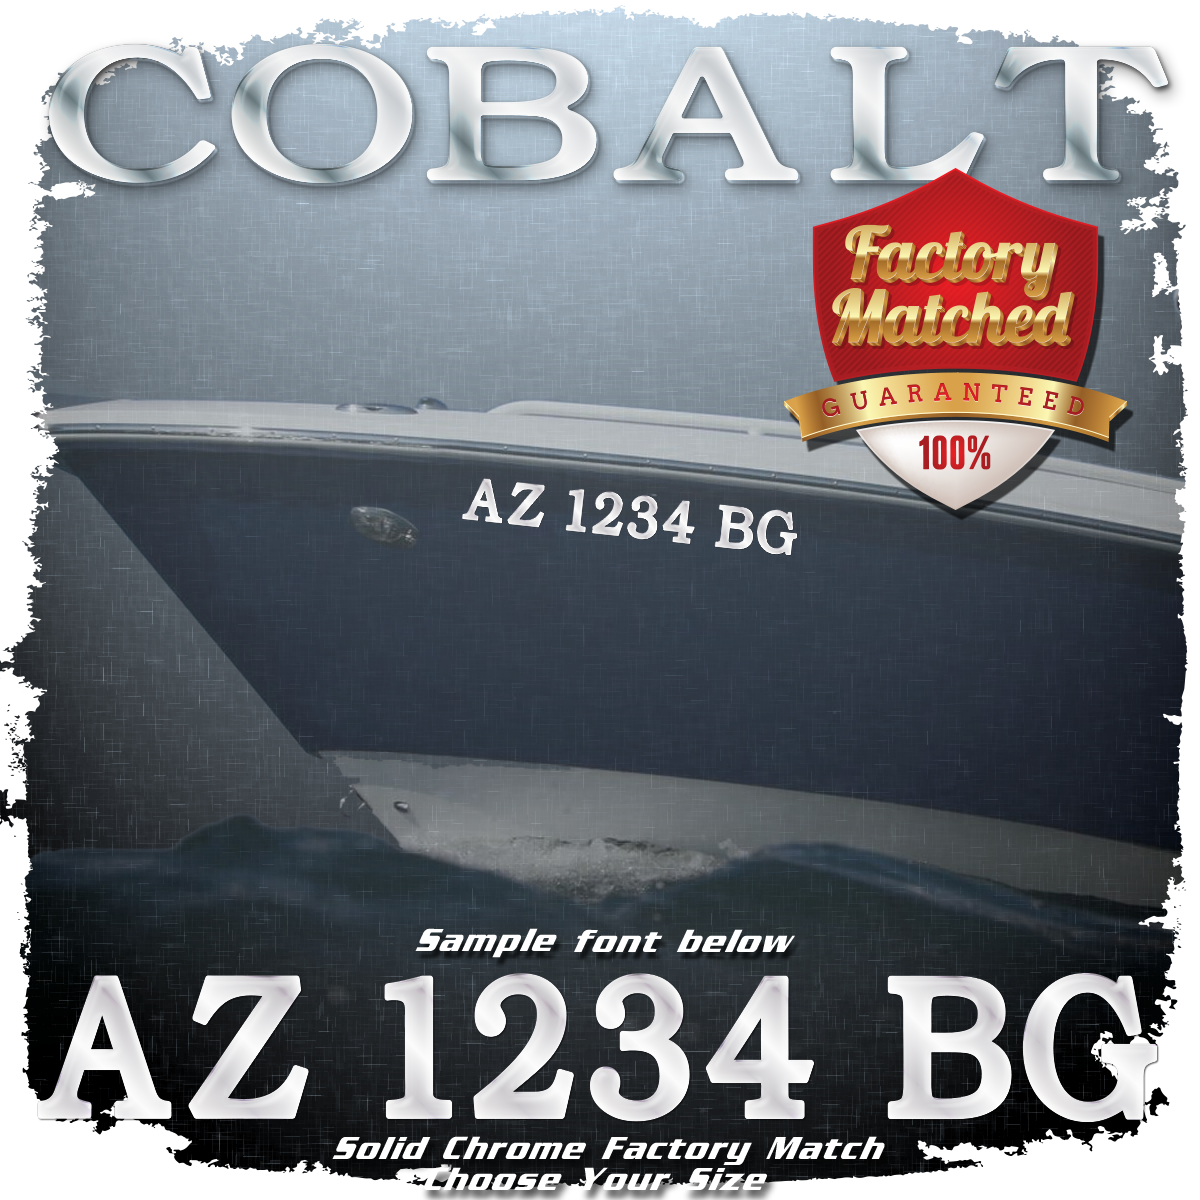 Cobalt Registration (2 included), Factory Matched Chrome